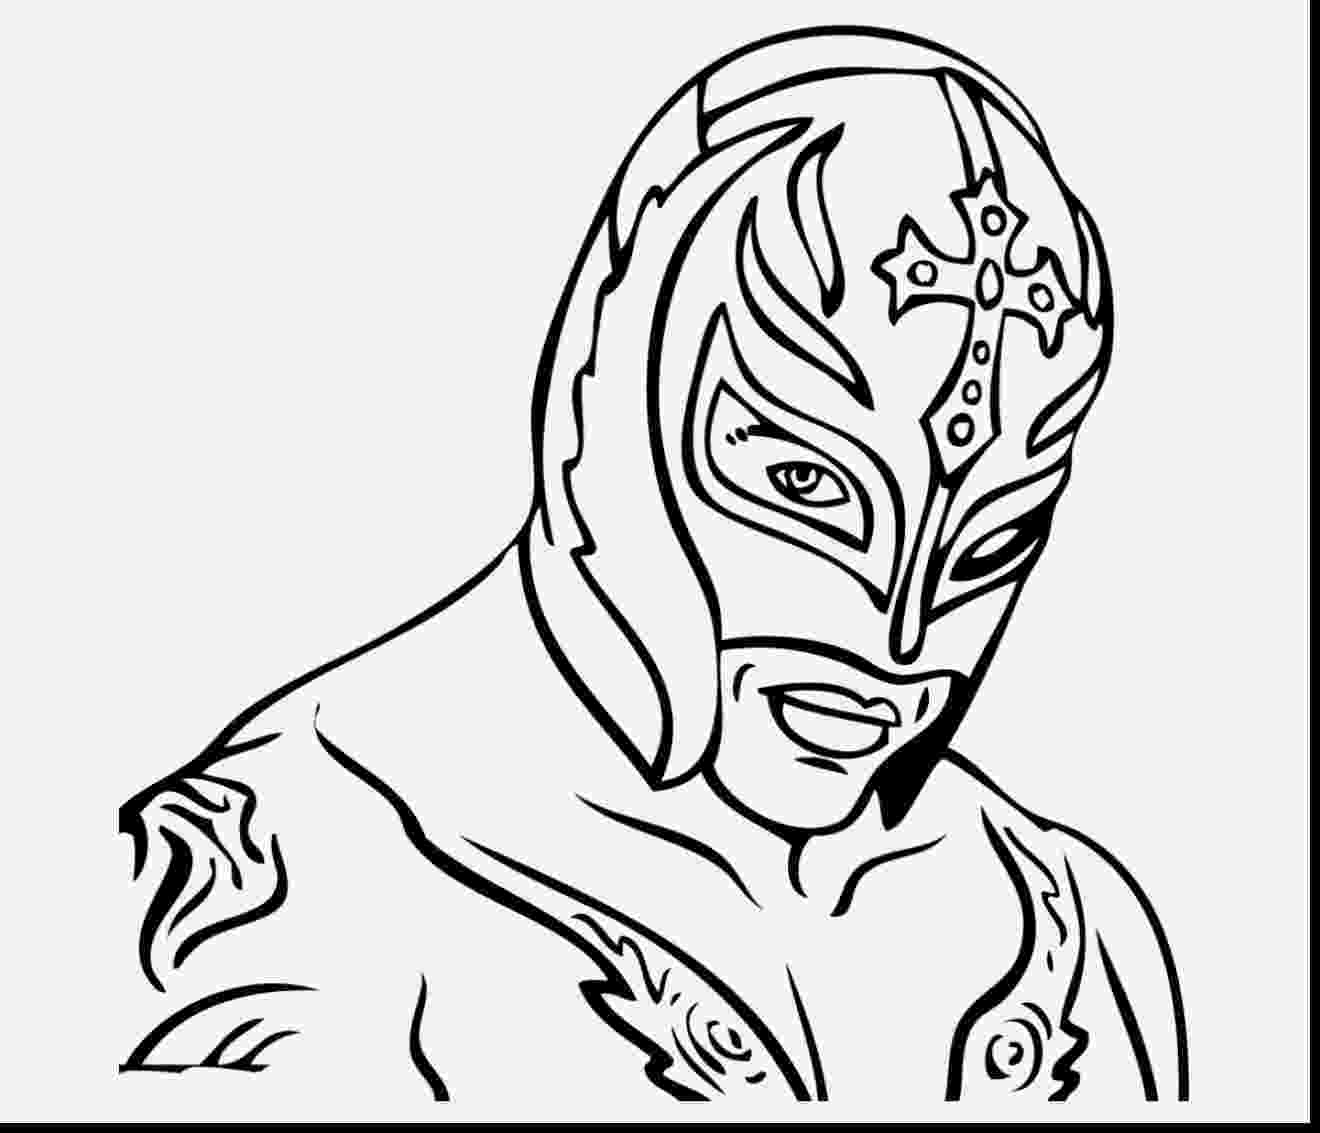 wwe coloring games wwe drawing games at getdrawingscom free for personal games wwe coloring 1 1